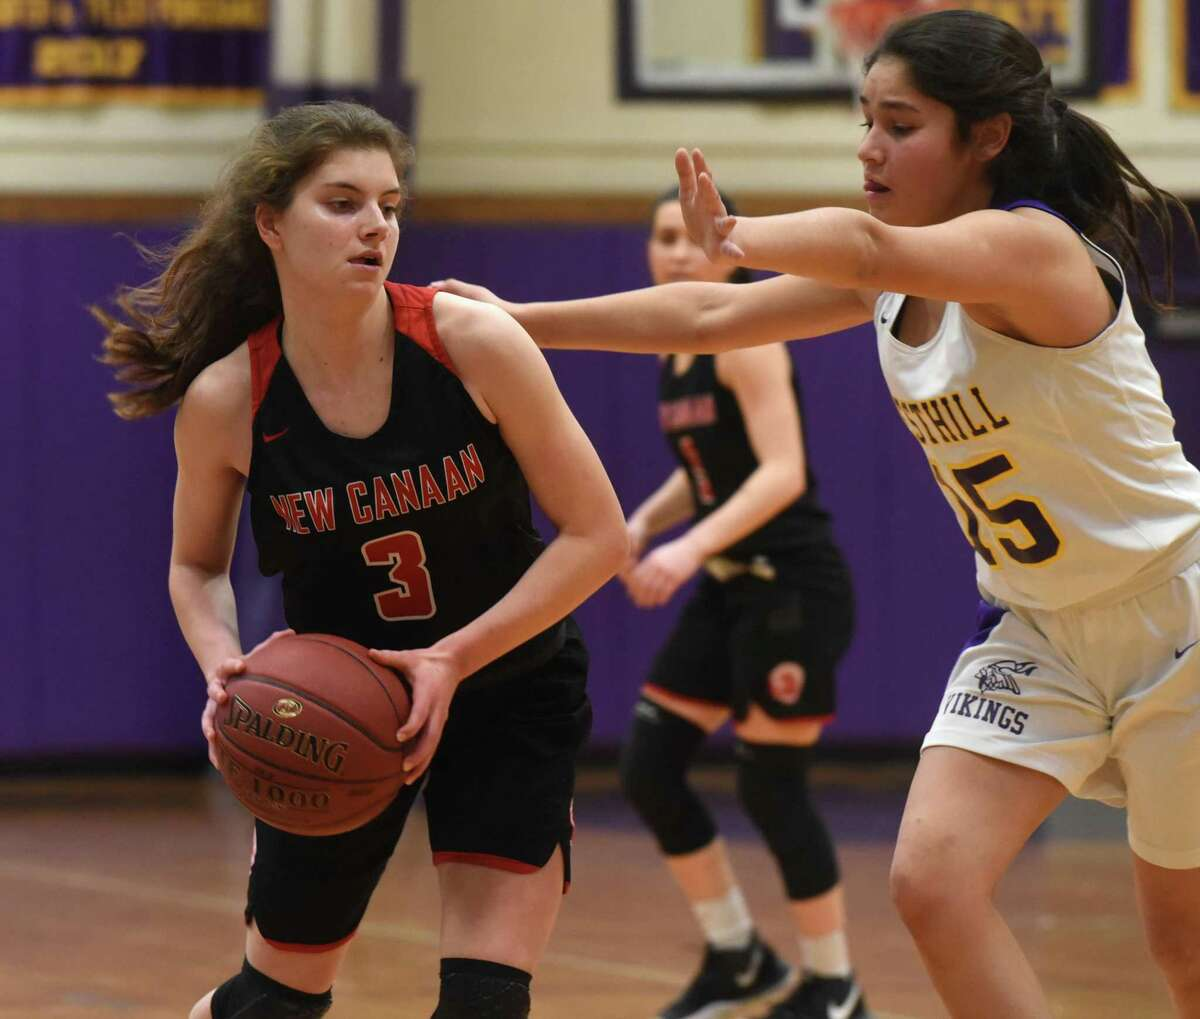 New Canaan's Natalie Plosker (3) looks to pass as Westhill's Jane Bautista (15) defends during a girls basketball game at Westhill High School in Stamford on Monday, Feb. 17, 2020.